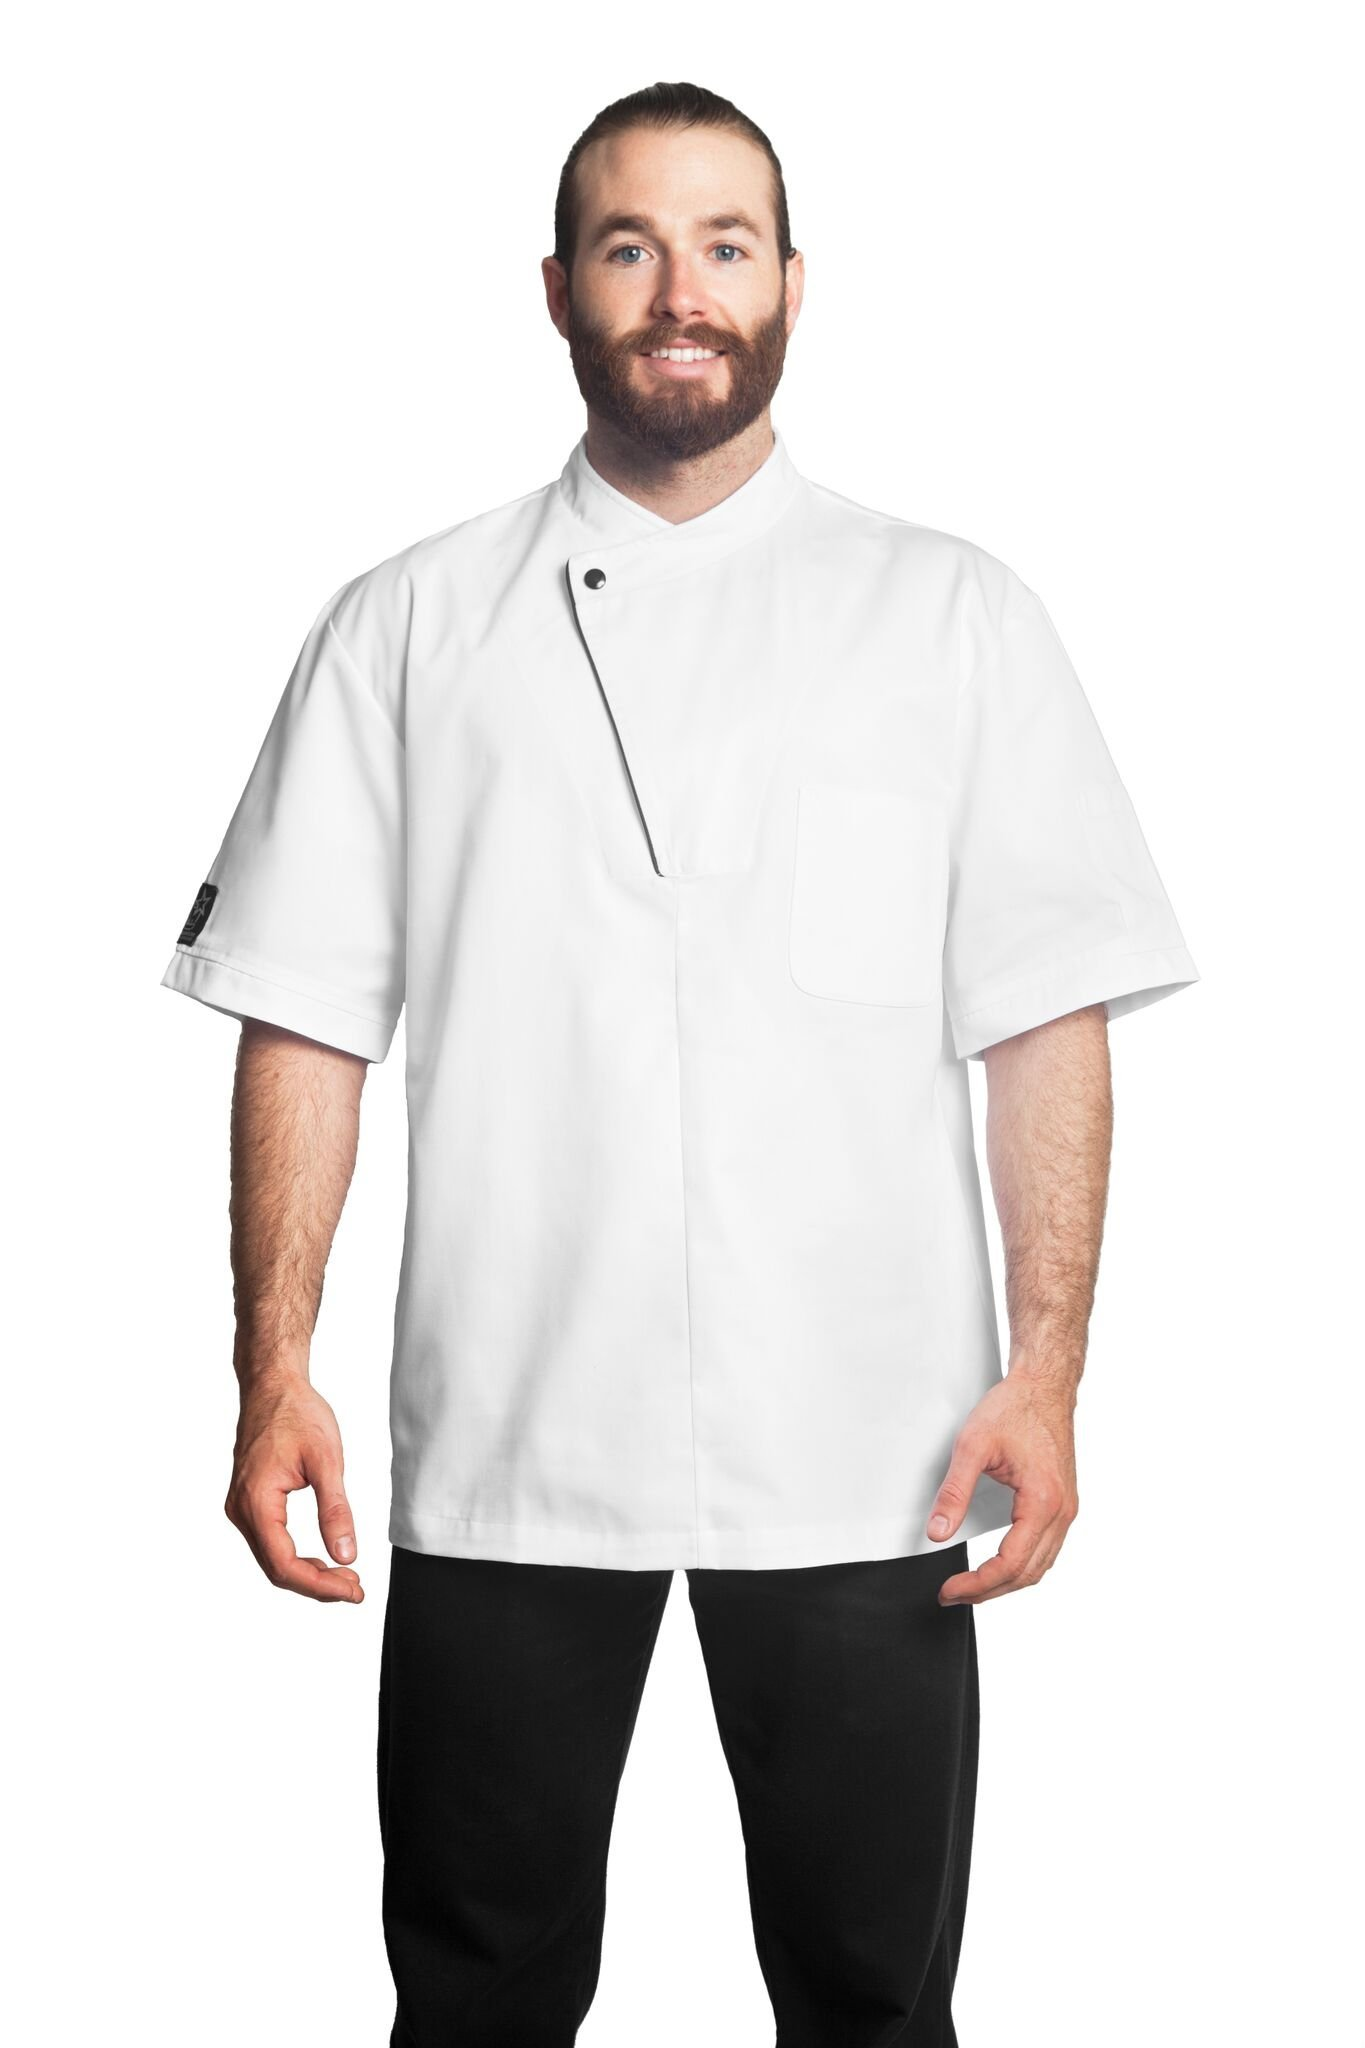 Bragard Dallas Short Sleeve Lightweight Chef Jacket Stylish Black Piping Poly Cotton - White | Sizes 54 US | by Bragard